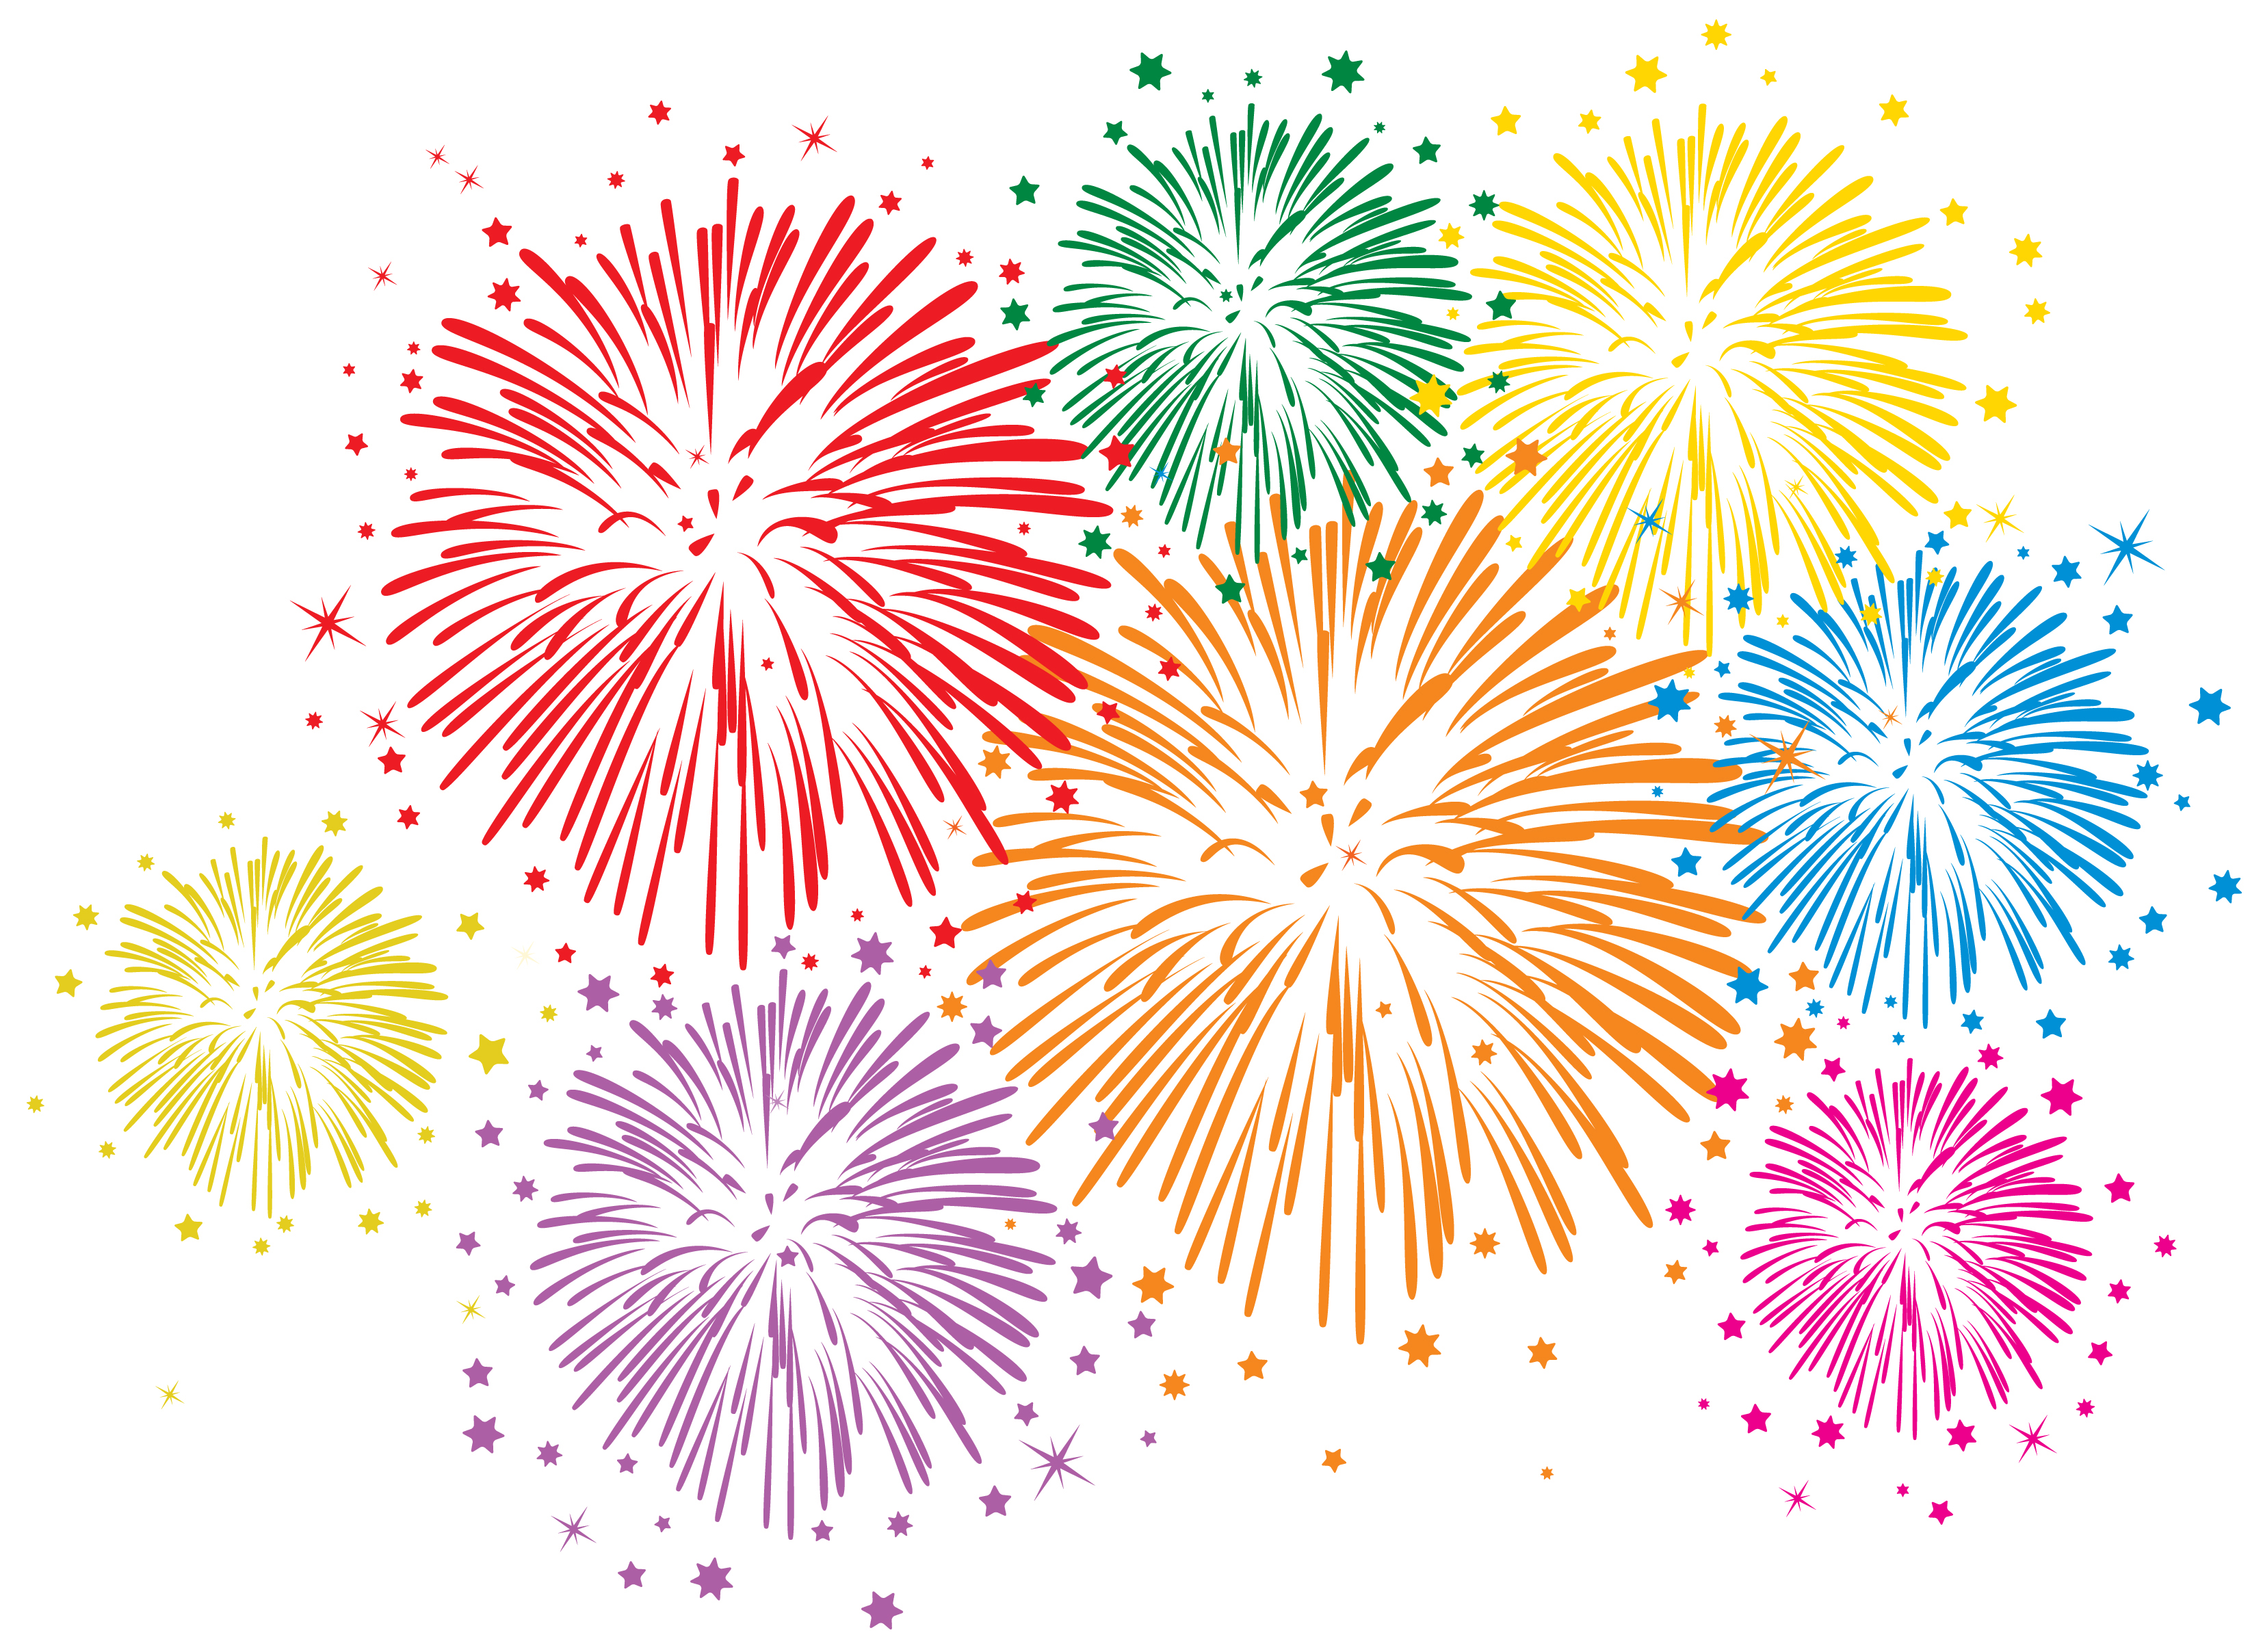 Toronto's ONLY Victoria Day fireworks show will be a spectacular 14 ...